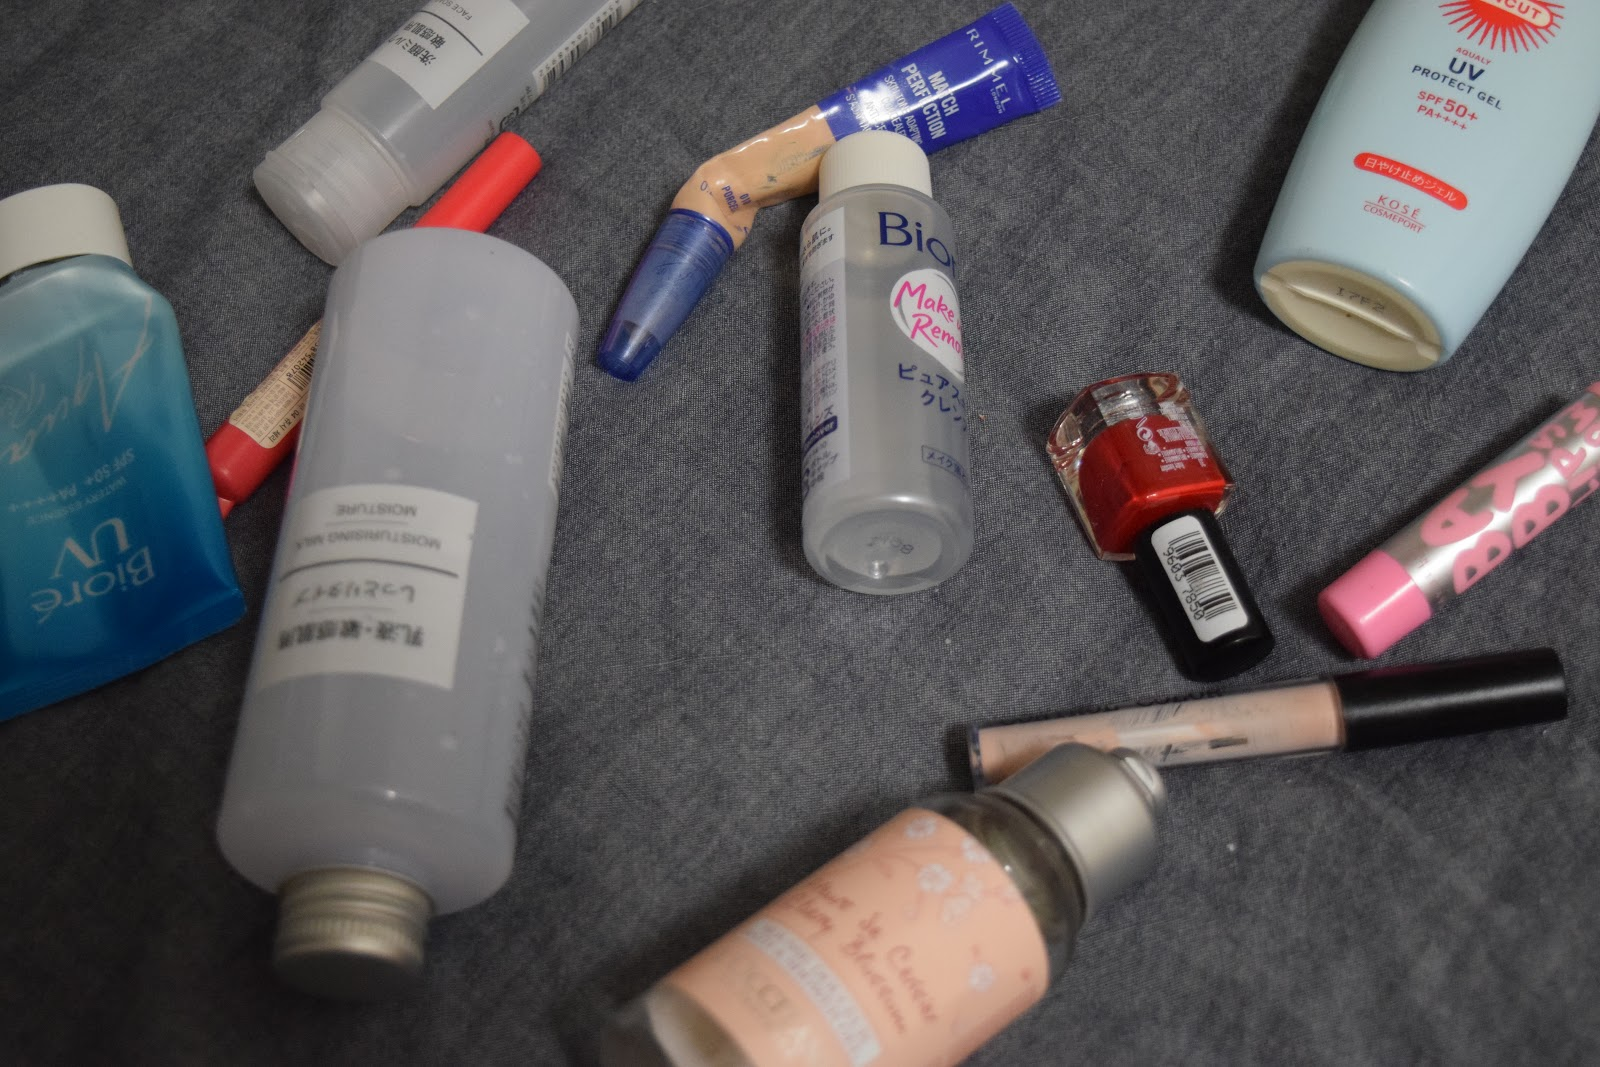 flatlay of empty beauty products from Japan and the UK